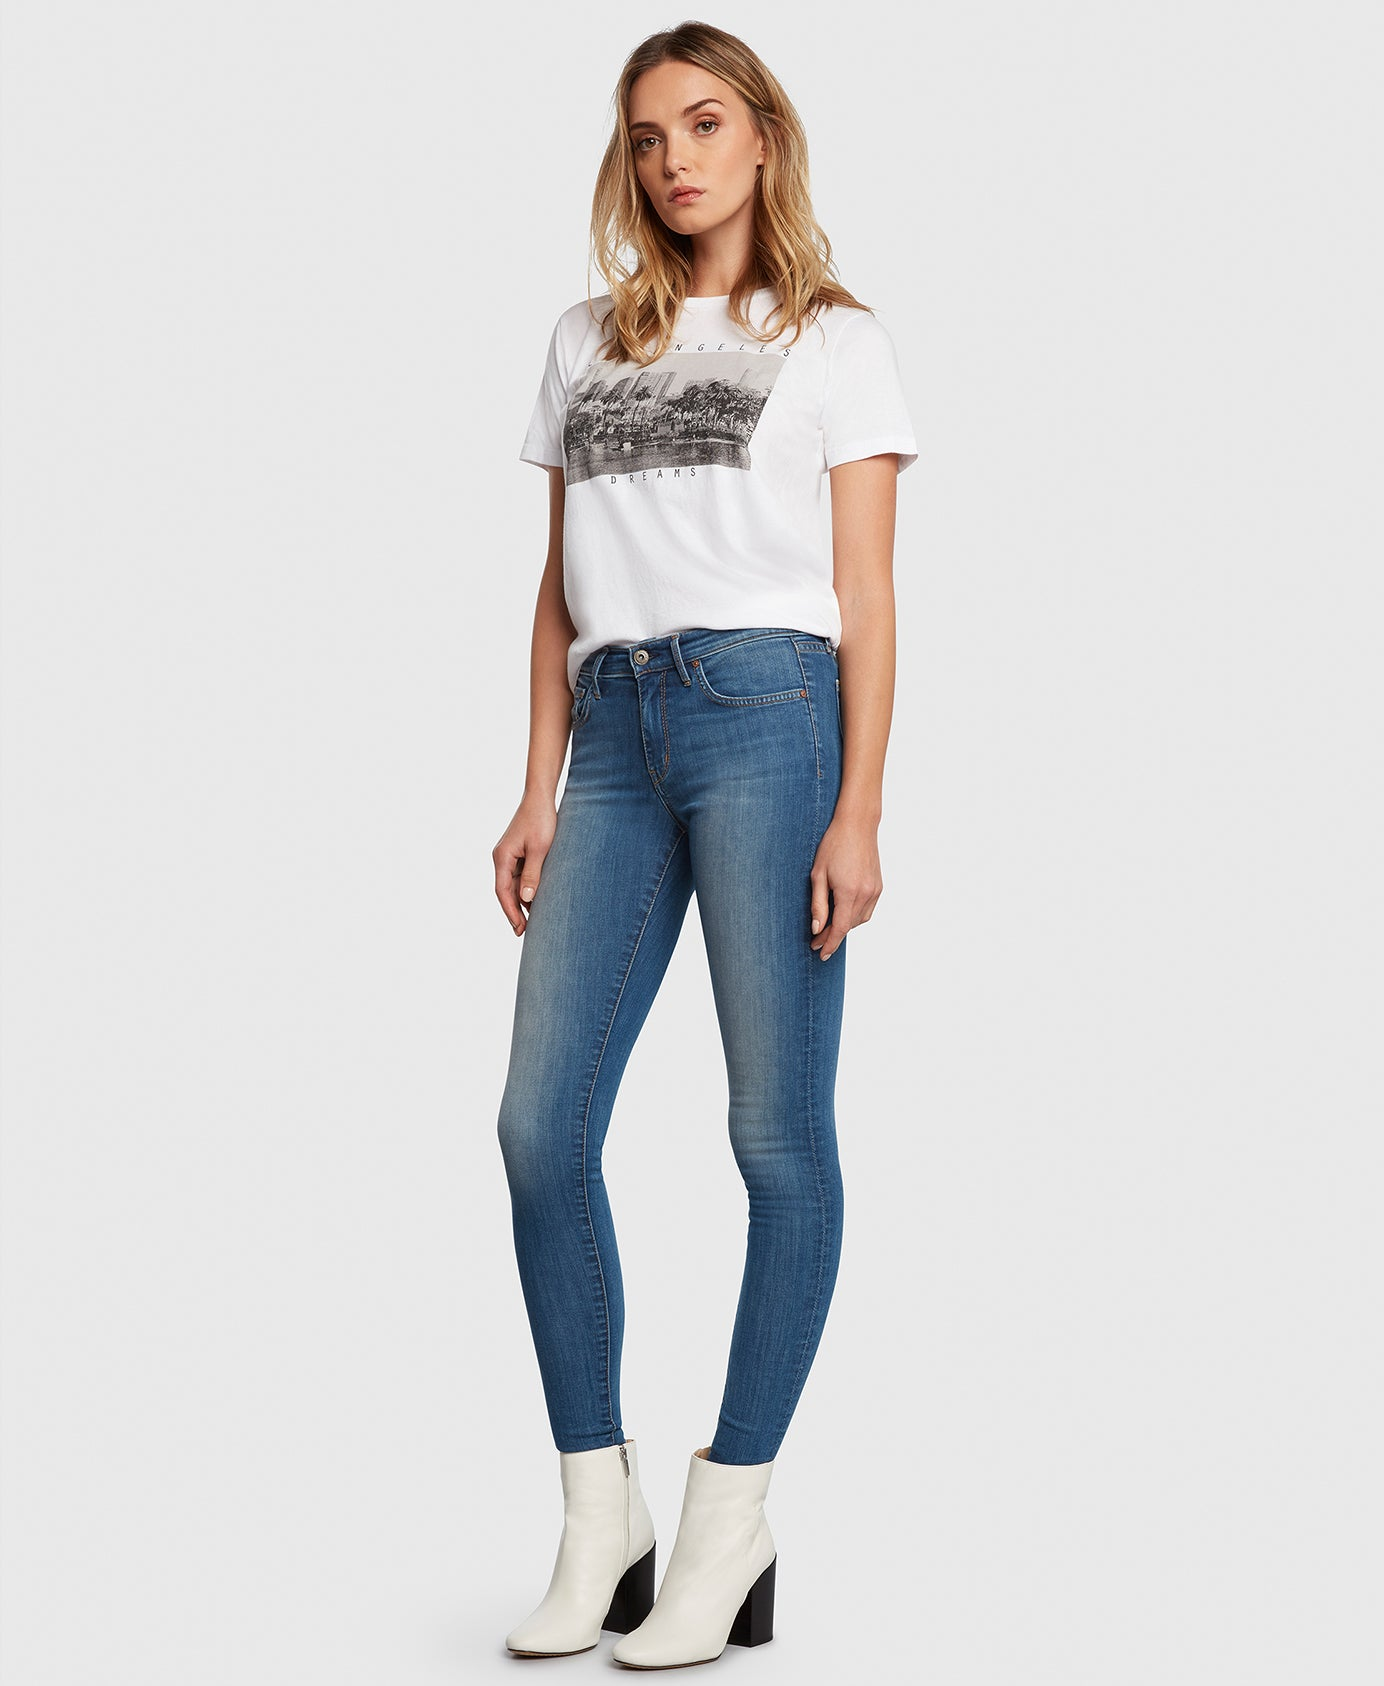 DREAMER in Escapade Principle Denim skinny jeans side